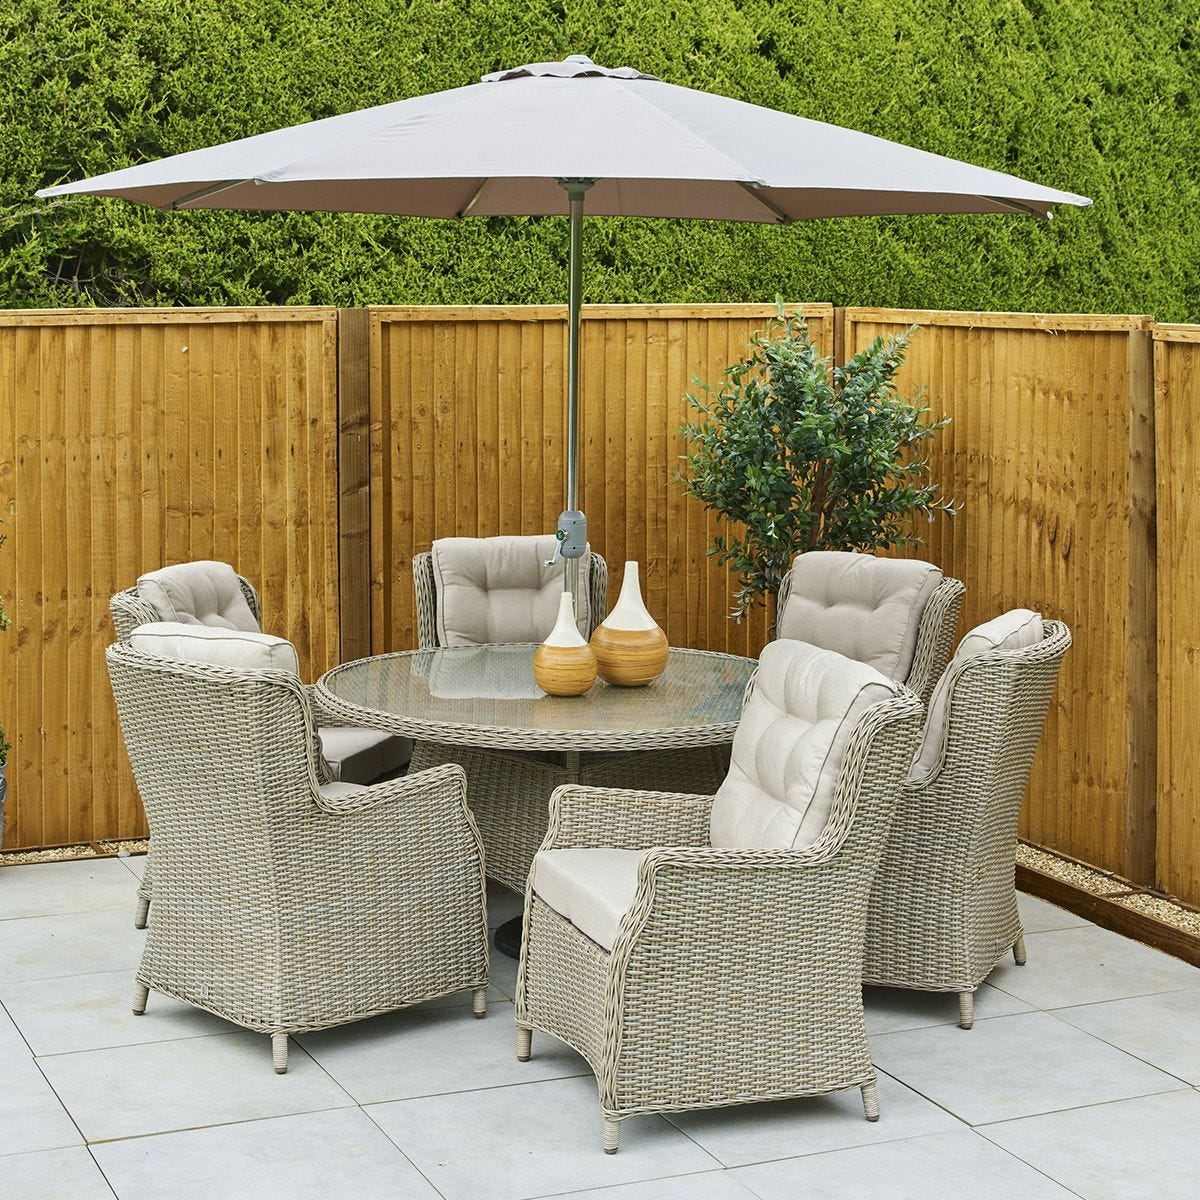 LG Outdoor Toulon 6 Seat Highback Dining Set with Lazy Susan, 3m Parasol and Base